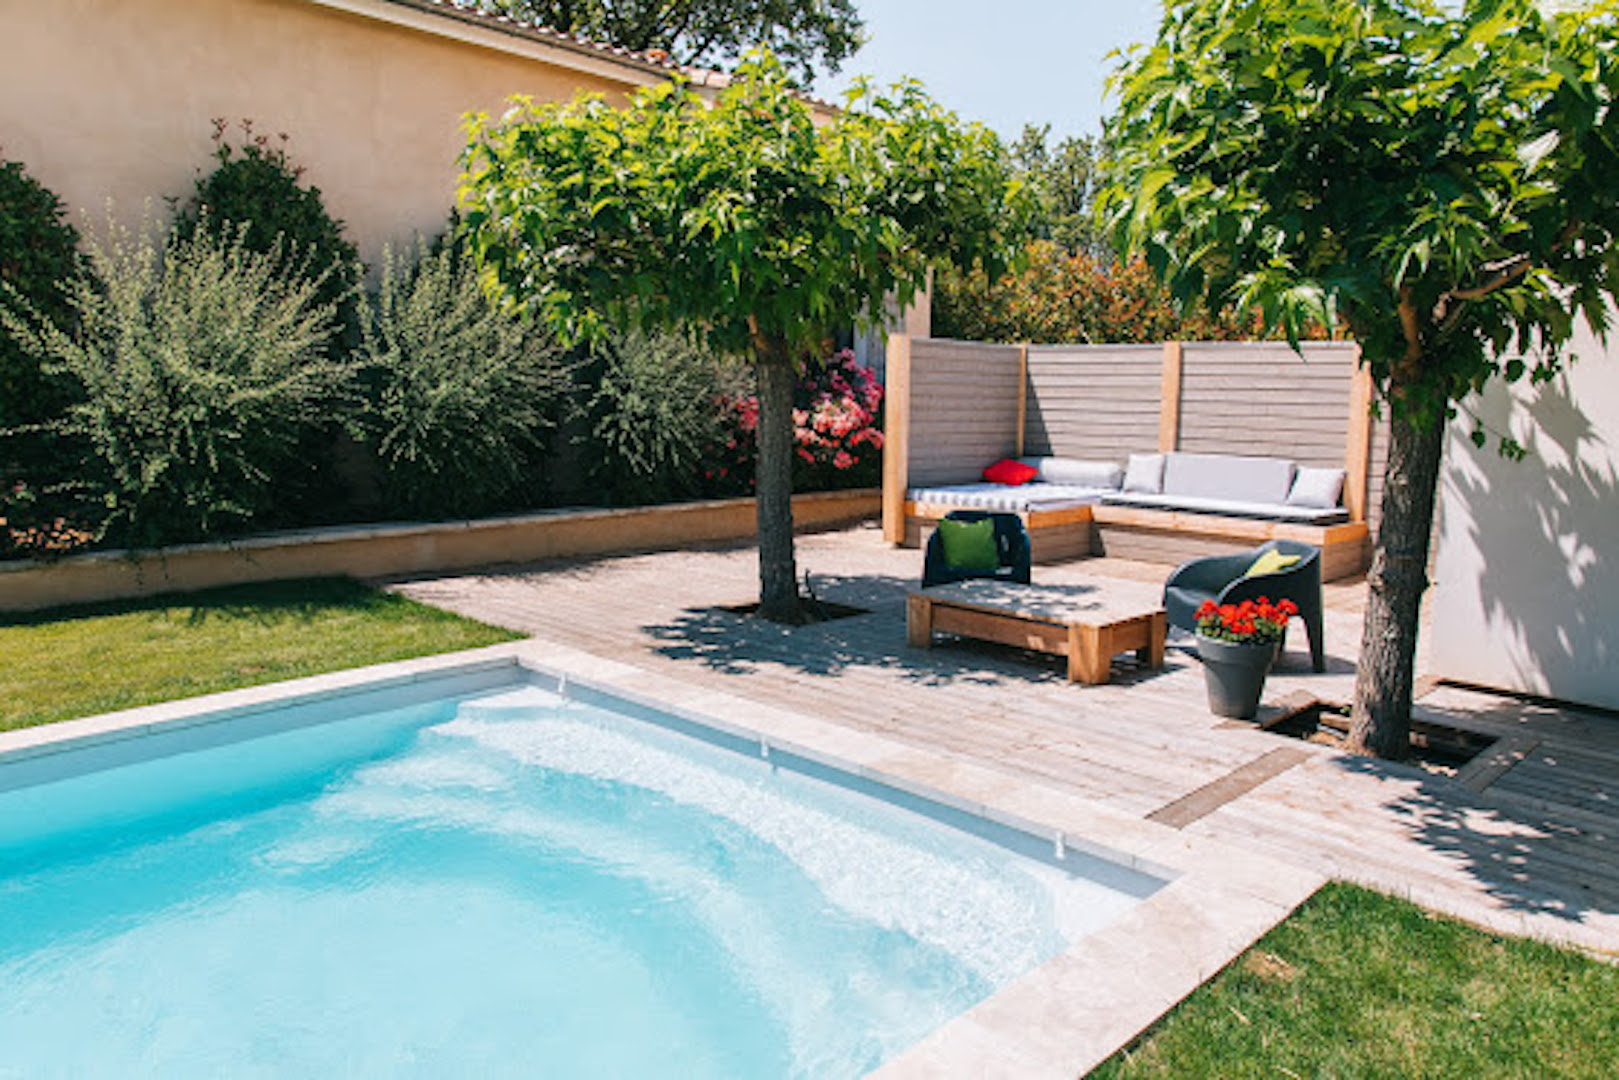 Holiday house Le Poulailler,Family Perfect House with Private, Heated  in Luberon Estate (2789978), Saint Saturnin lès Apt, Vaucluse, Provence - Alps - Côte d'Azur, France, picture 1